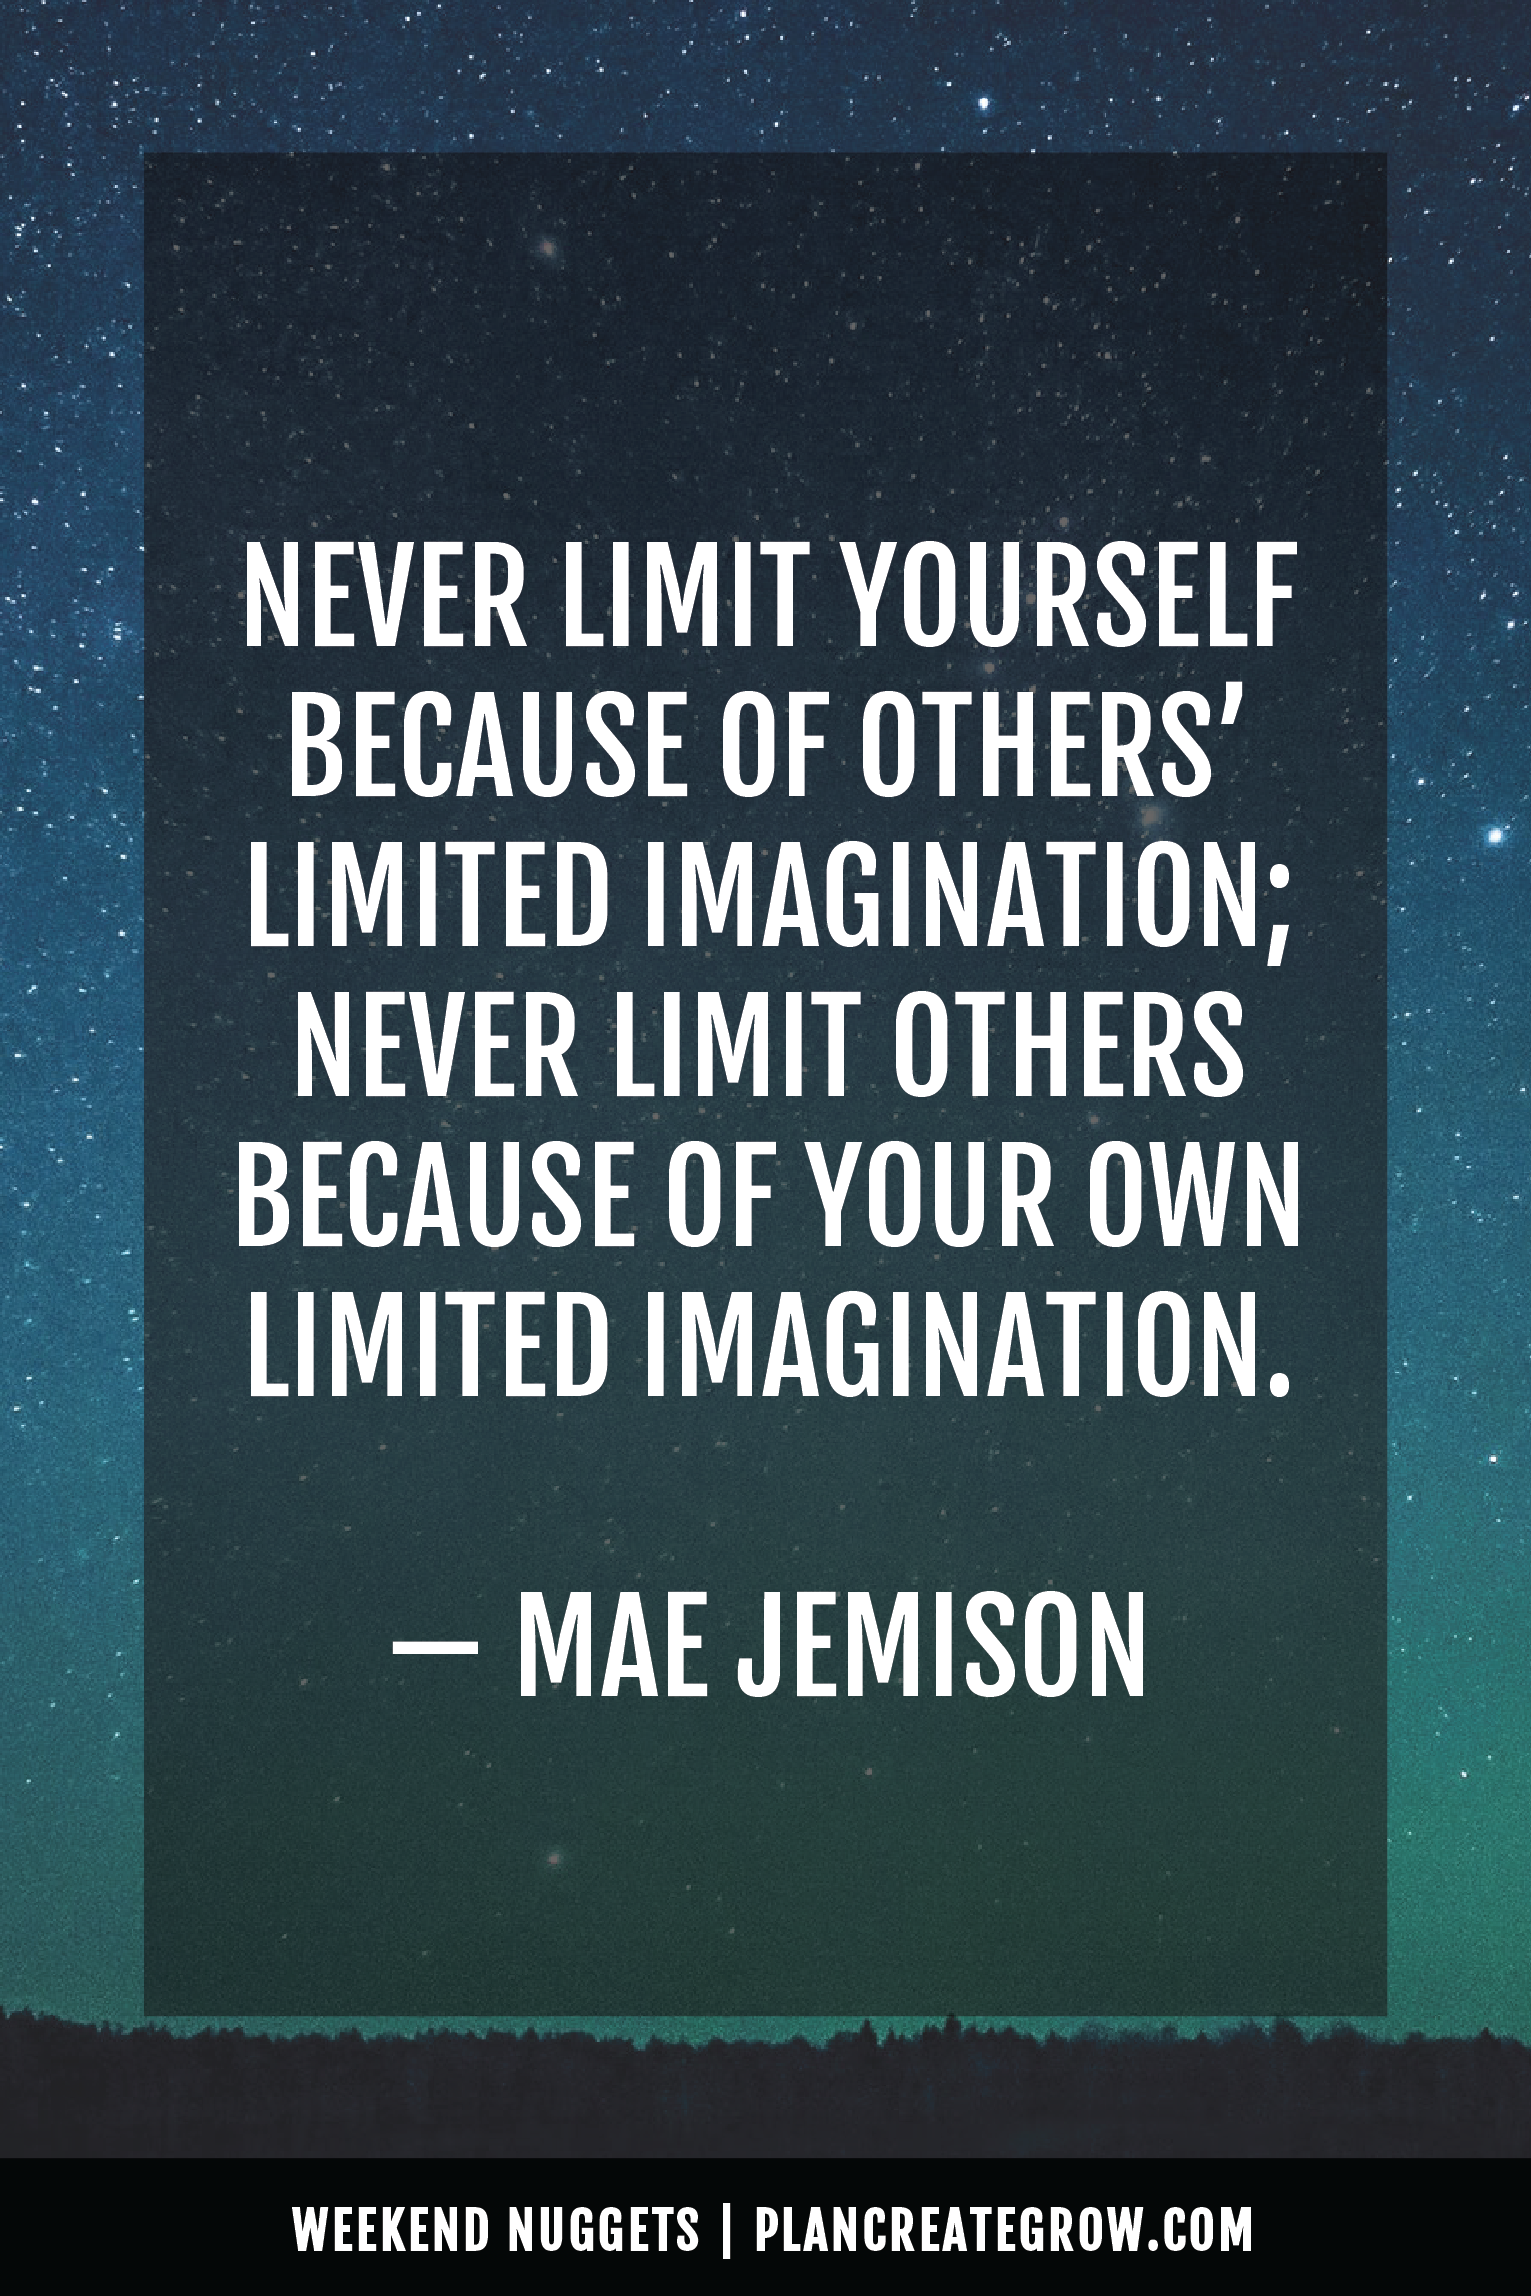 """""""Never limit yourself because of others' limited imaginations; never limit others because of your own limited imagination."""" - Mae Jemison  This image forms part of a series called Weekend Nuggets - a collection of quotes and ideas curated to delight and inspire - shared each weekend. For more, visit plancreategrow.com/weekend-nuggets."""